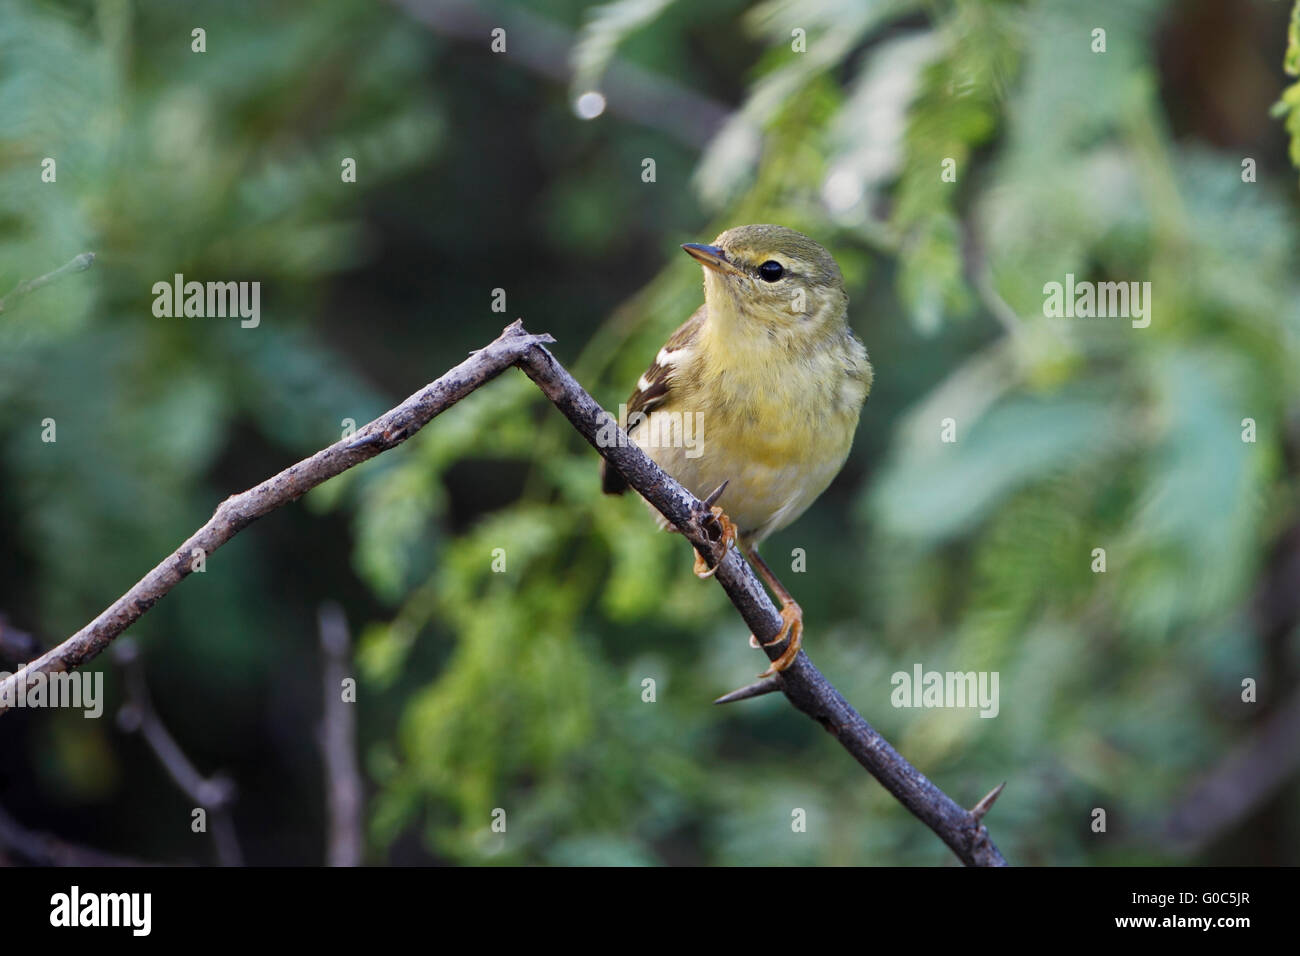 Blackpoll Warbler (Setophaga striata) female on branch, Guanica Dry Forest, Puerto Rico - Stock Image